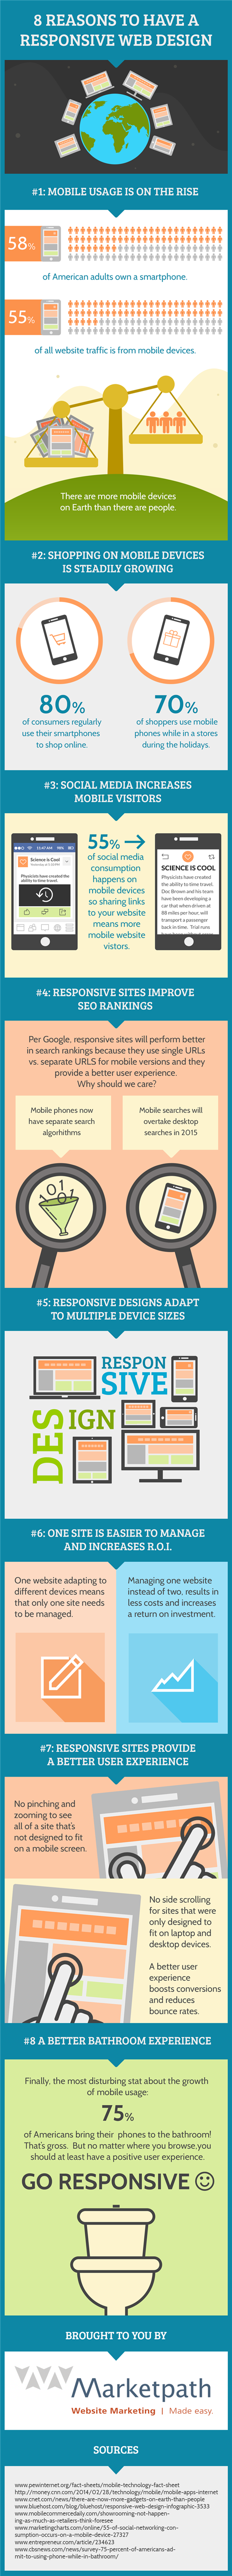 8 Reasons to Have a Responsive Web Design (infographic by Marketpath, Inc.)